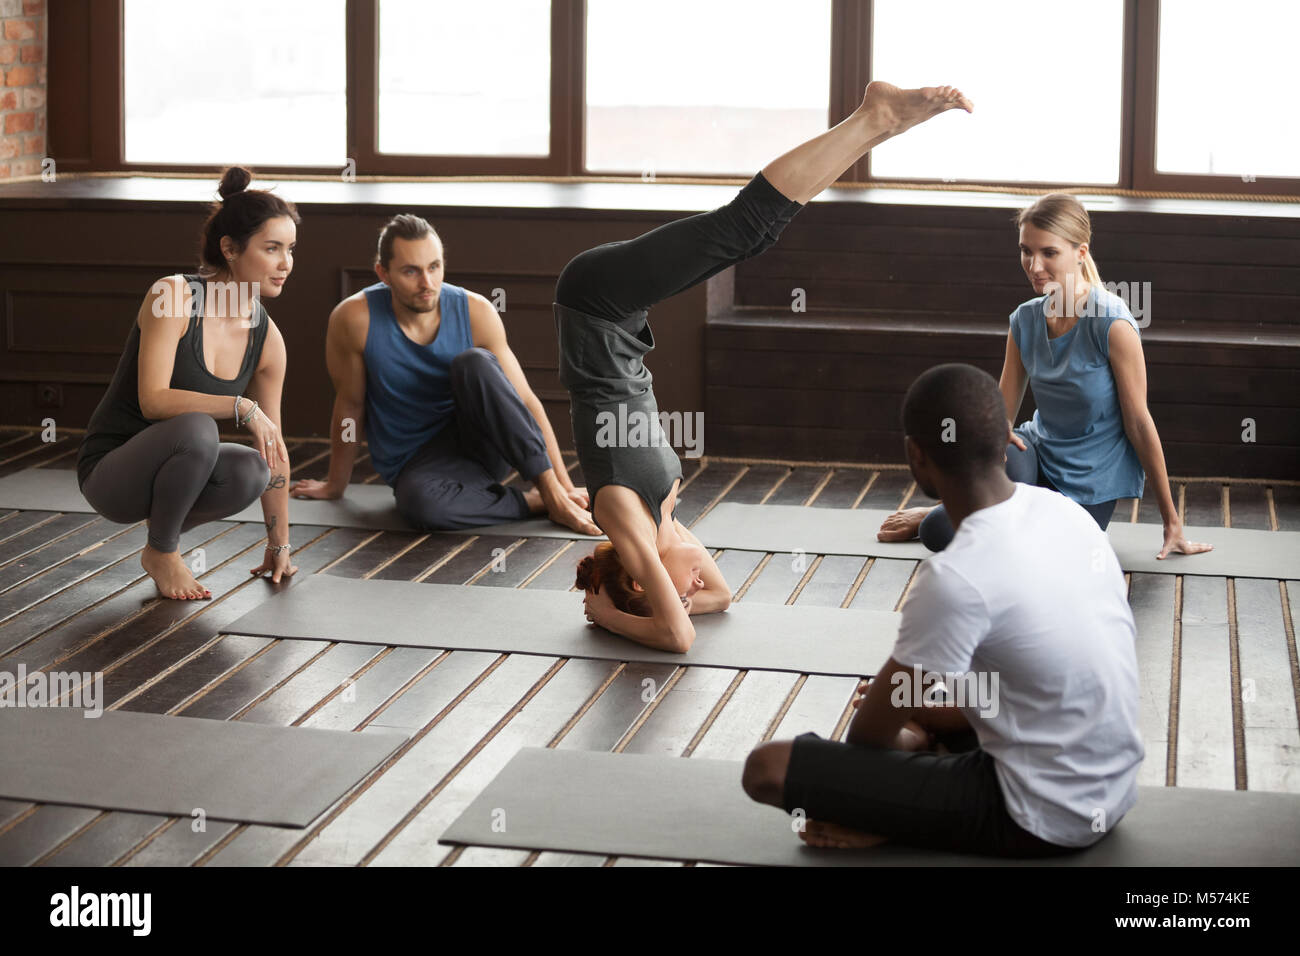 Woman standing on head practicing yoga at group training class - Stock Image